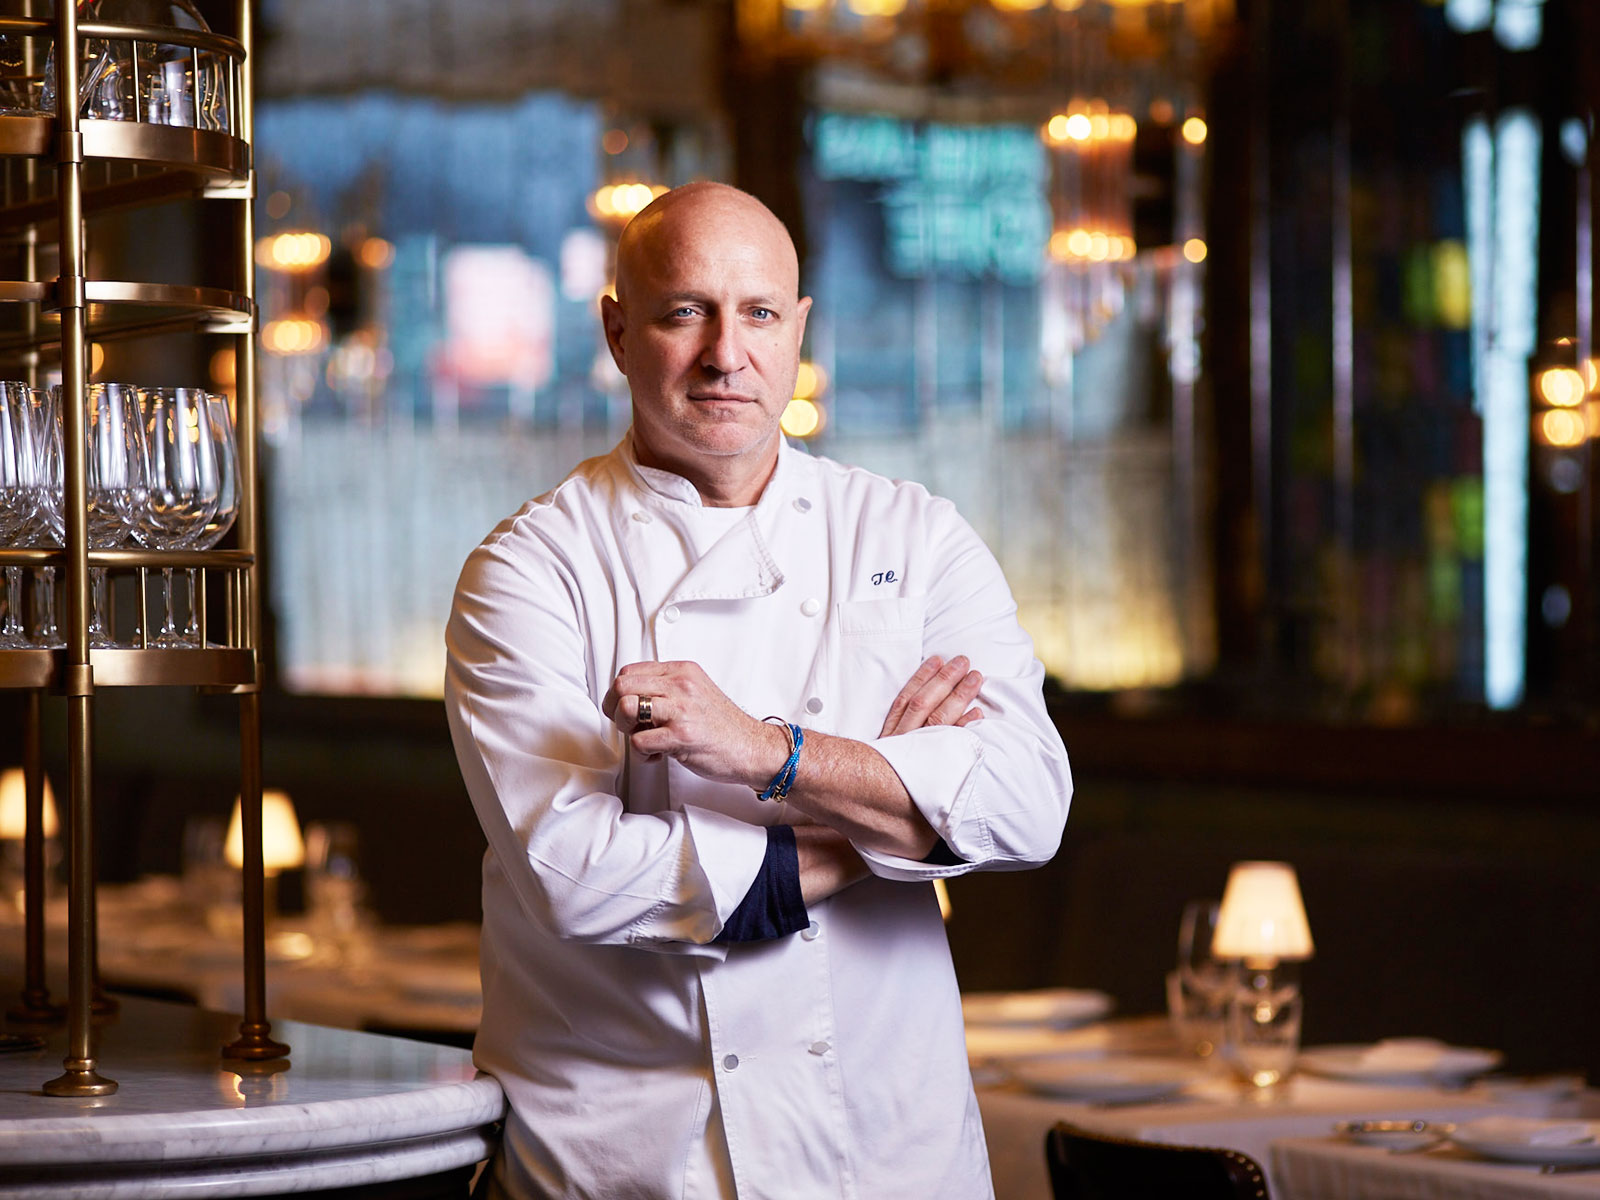 Tom Colicchio Fires Back After His Home Was Vandalized with 'Hate Speech' By Trump Supporters